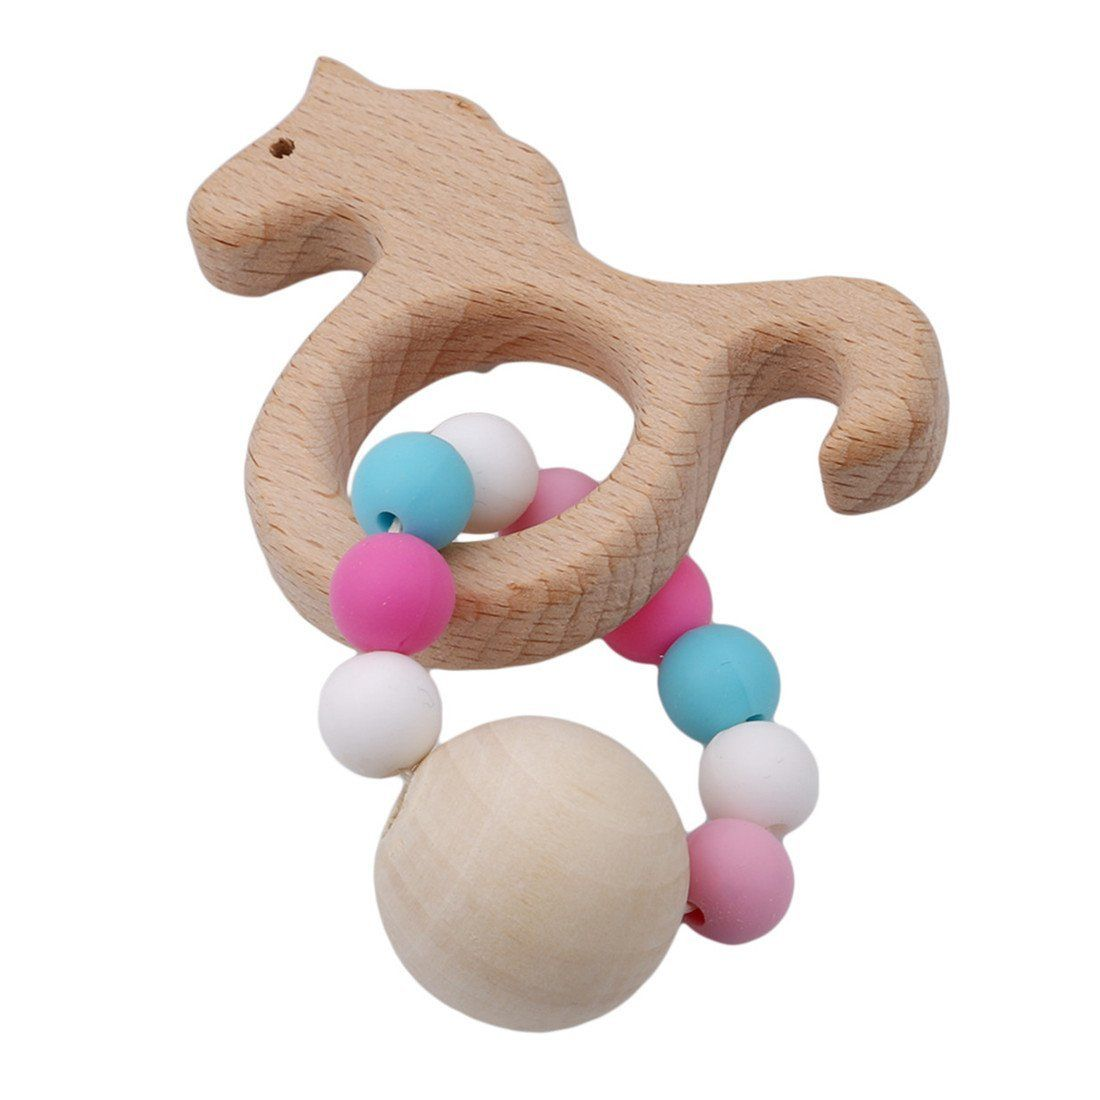 Unicorn toys images  Amazon Edtoy Baby Kids Teething Chew Toy Unicorn Wooden Teether